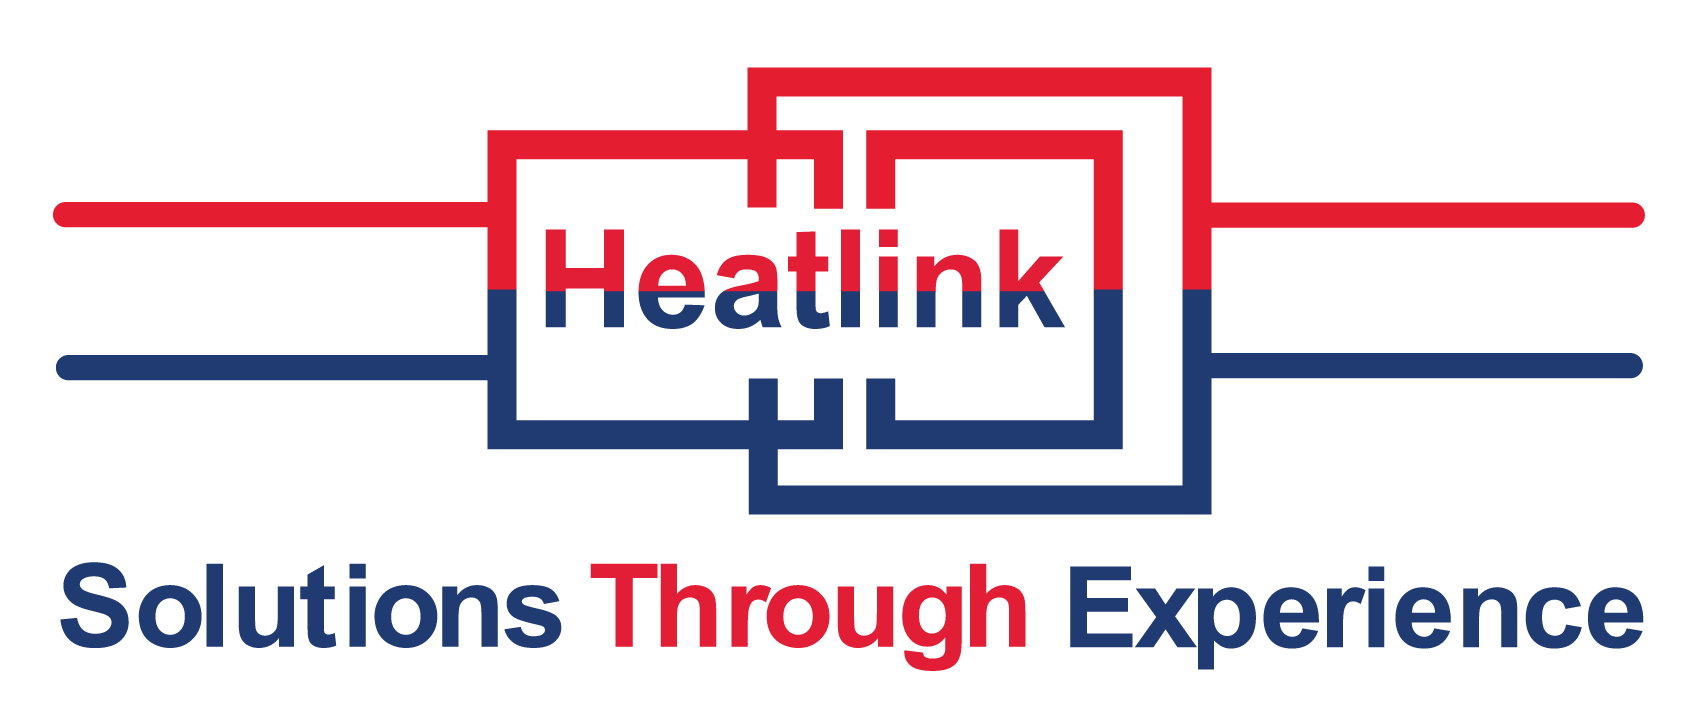 HEATLINK LOGO - Heat Interface Units Birmingham